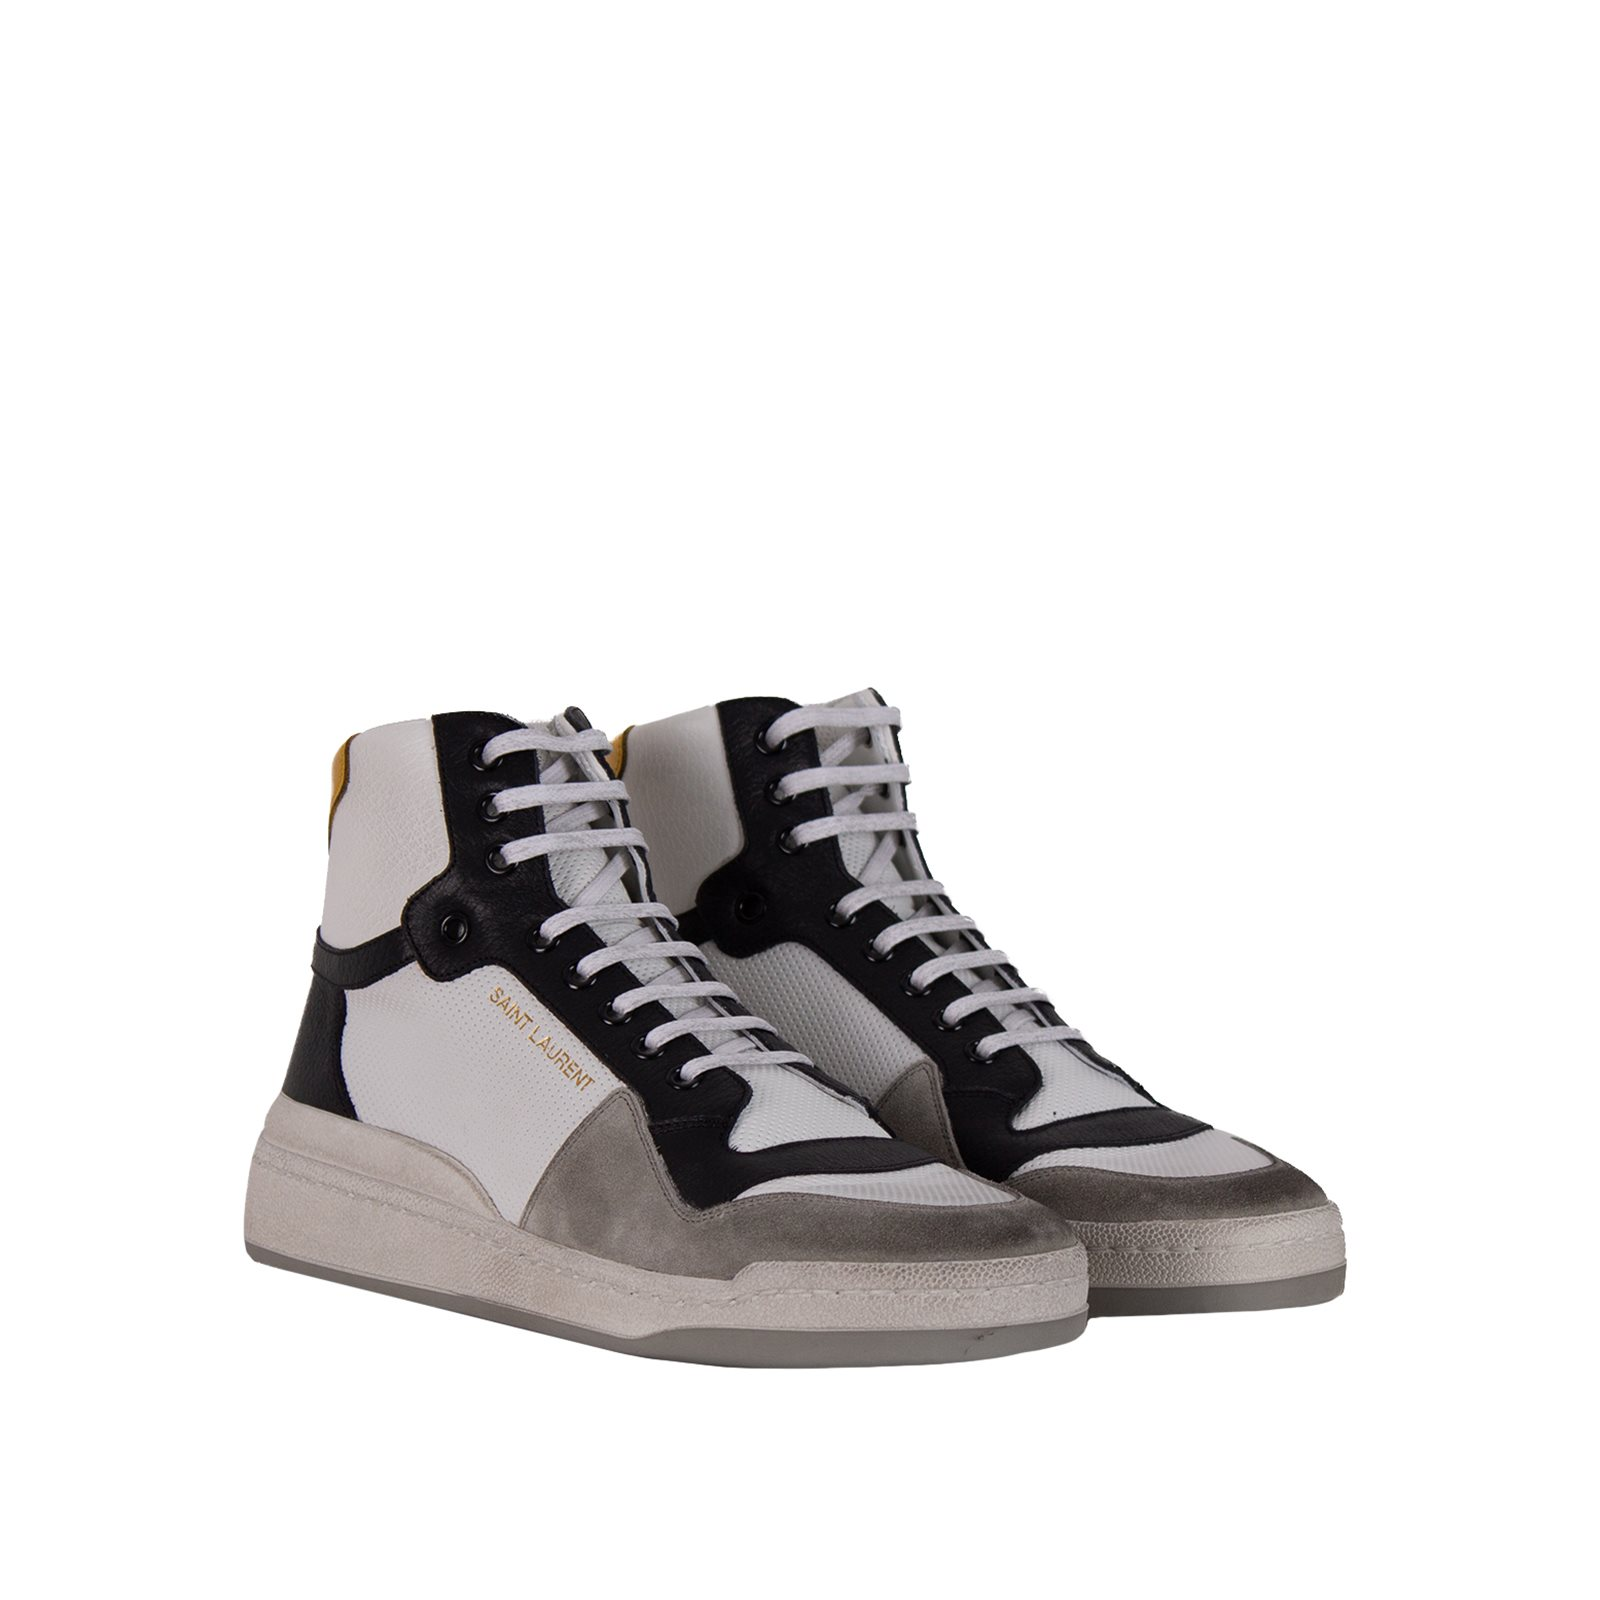 HIGH-TOP SNEAKERS 2